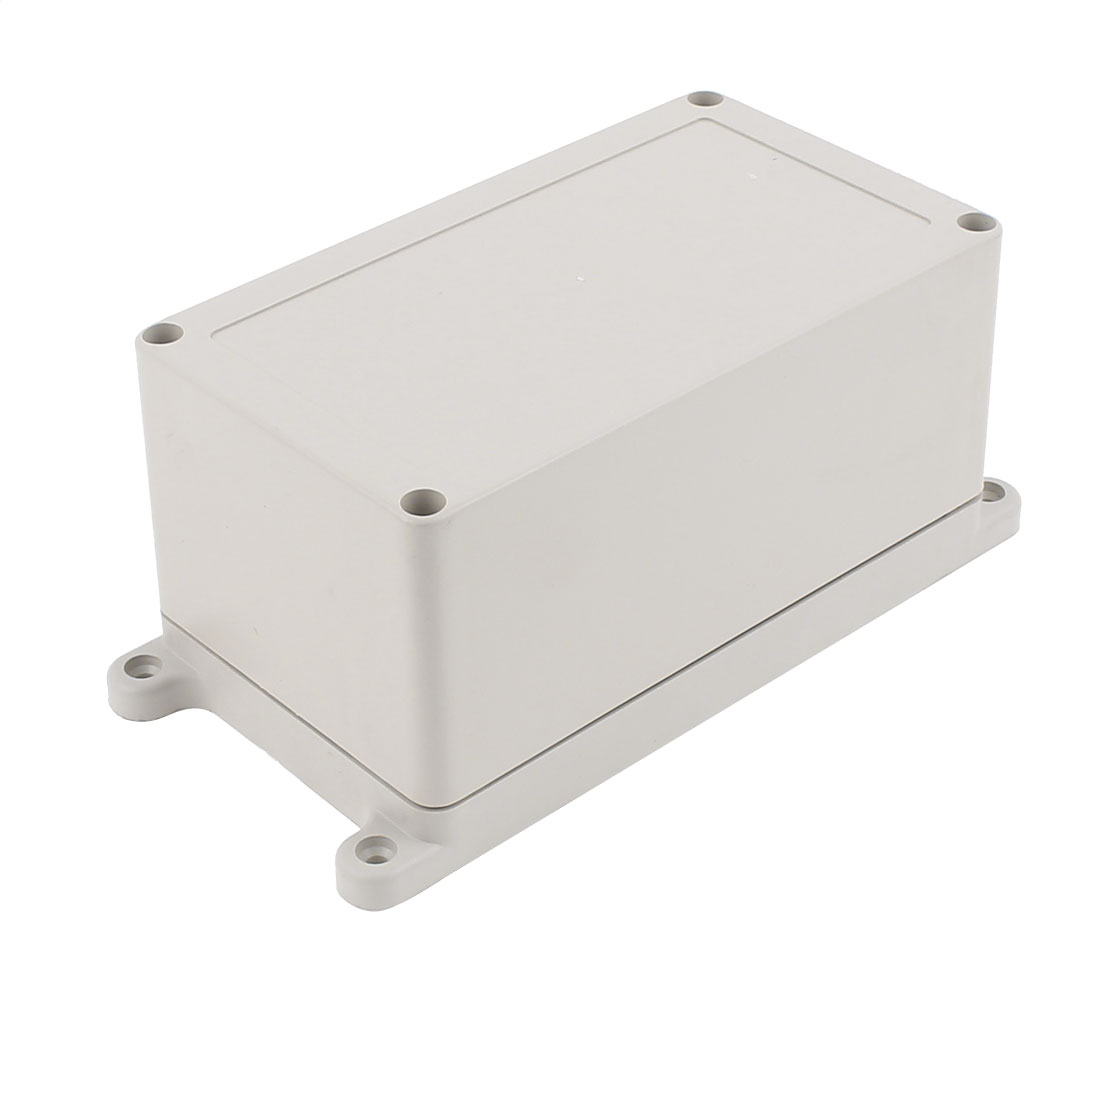 190 x 90 x 80mm Dustproof IP65 Junction Box Terminal Connecting Box Enclosure